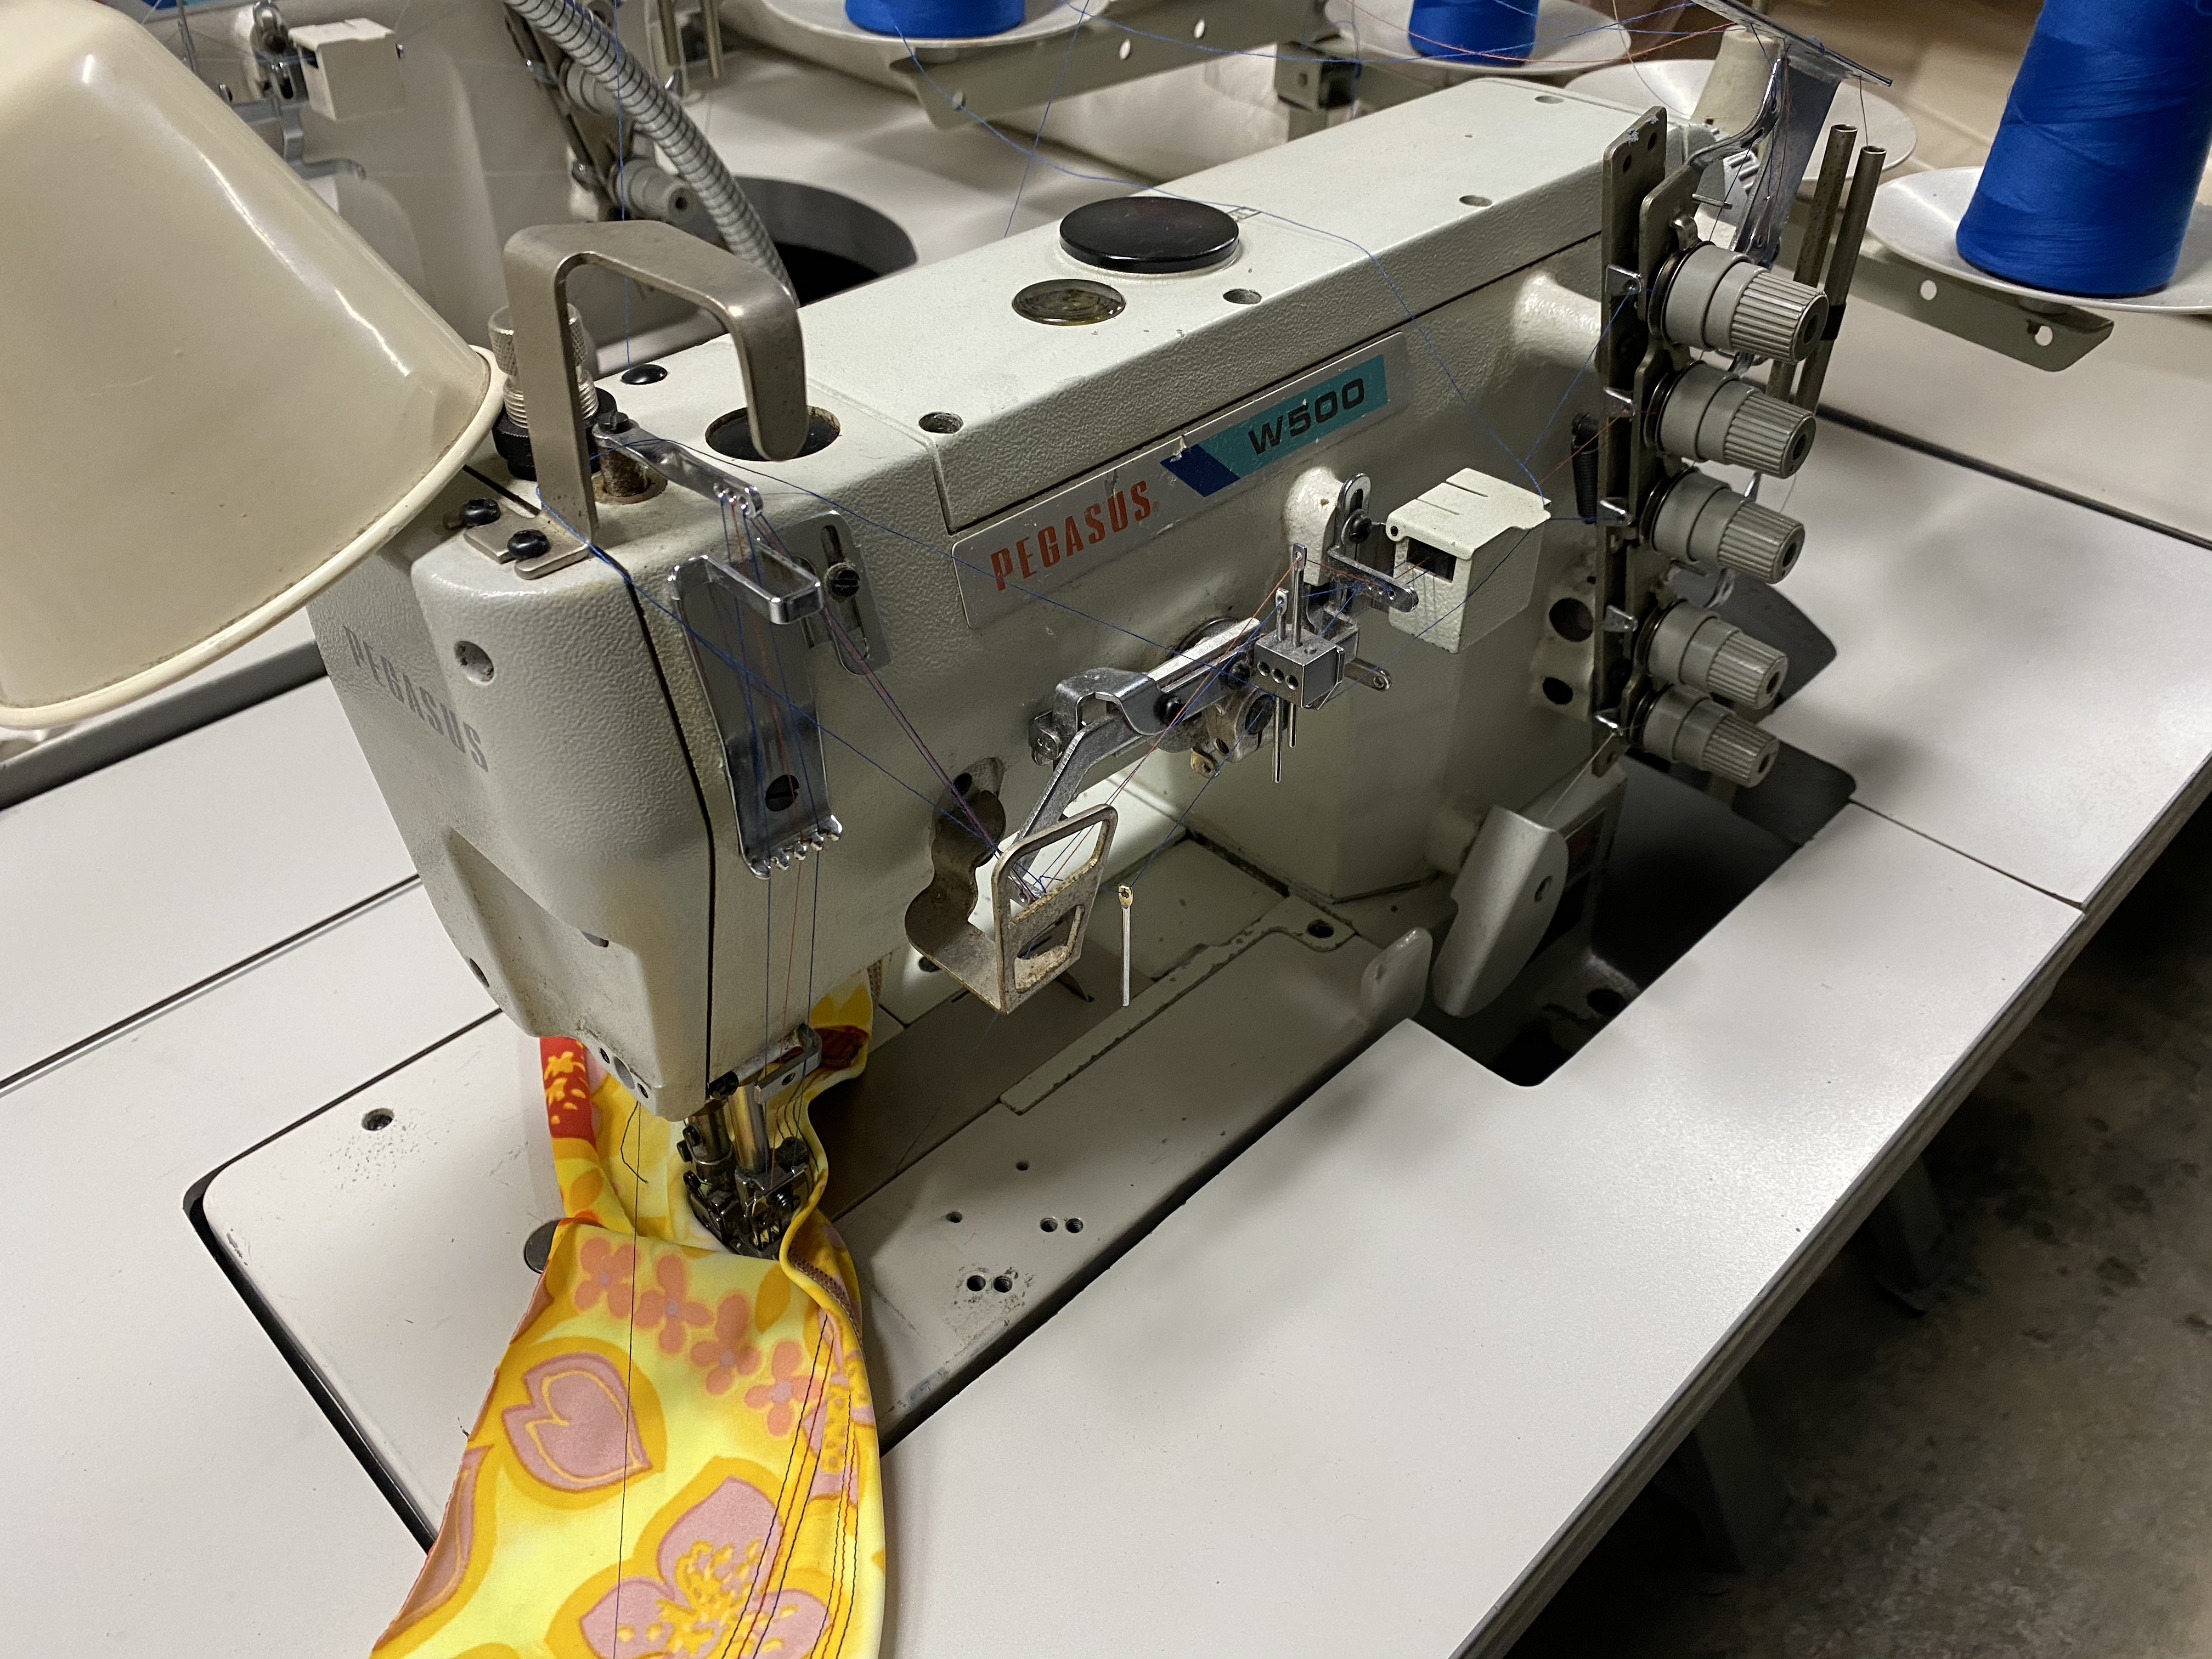 Pegasus W500 Coverstitch Sewing Machine Flatbed